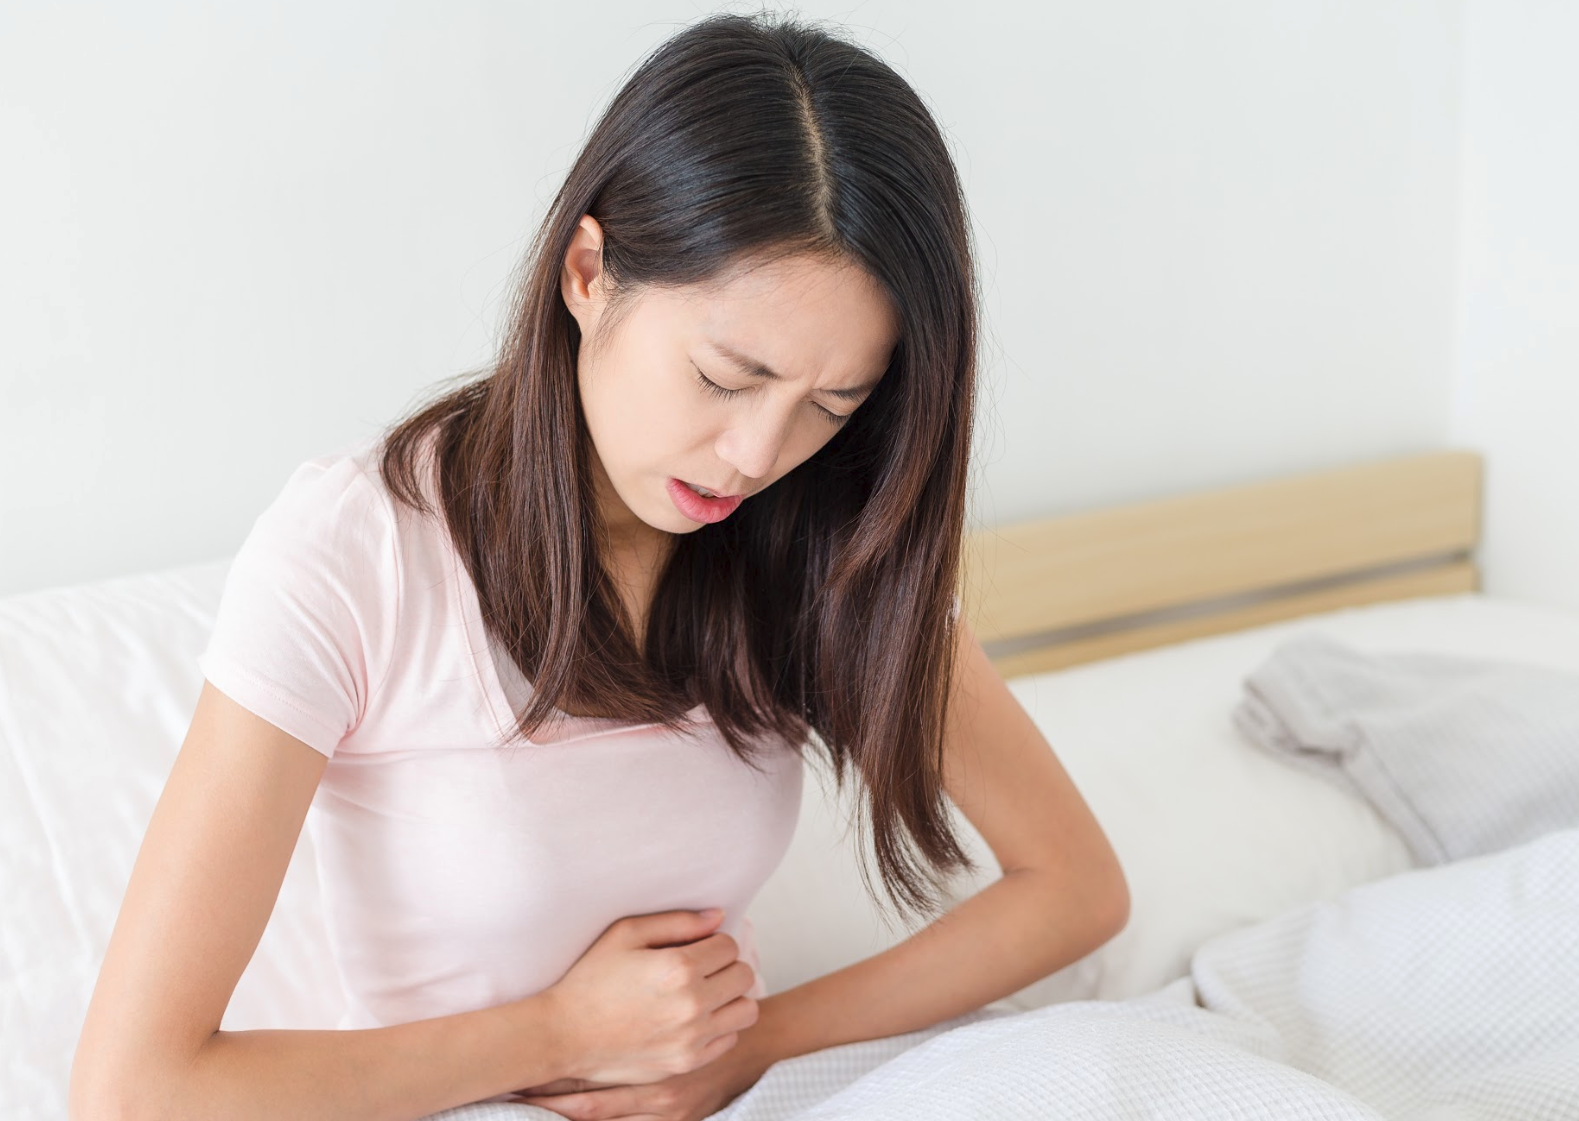 The pill can help with your menstrual cycle as well.